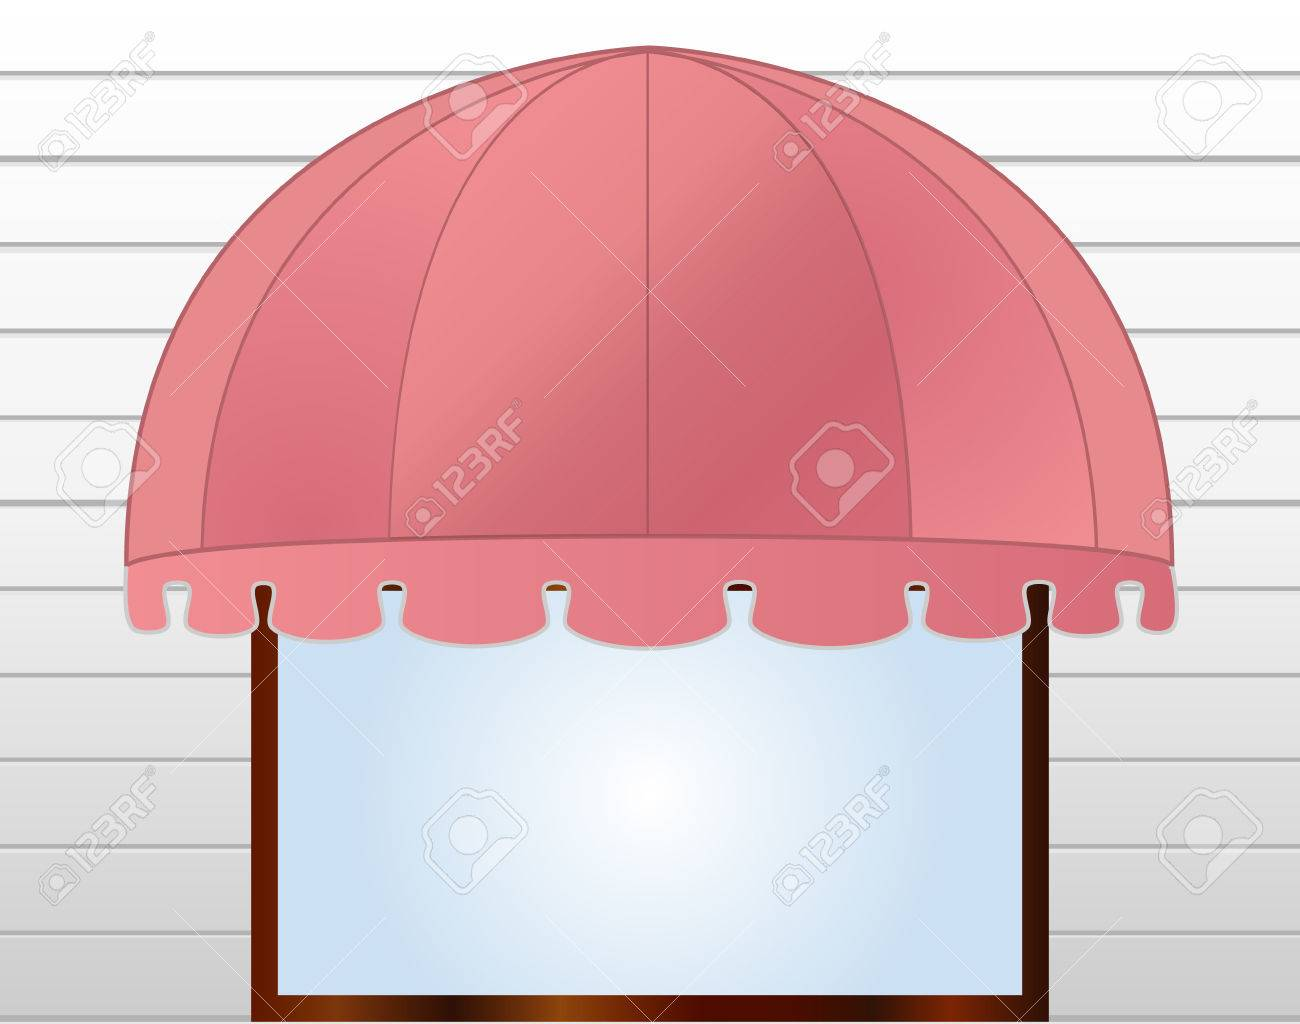 illustration of Storefront Awning in reddish pink Stock Vector - 7998031